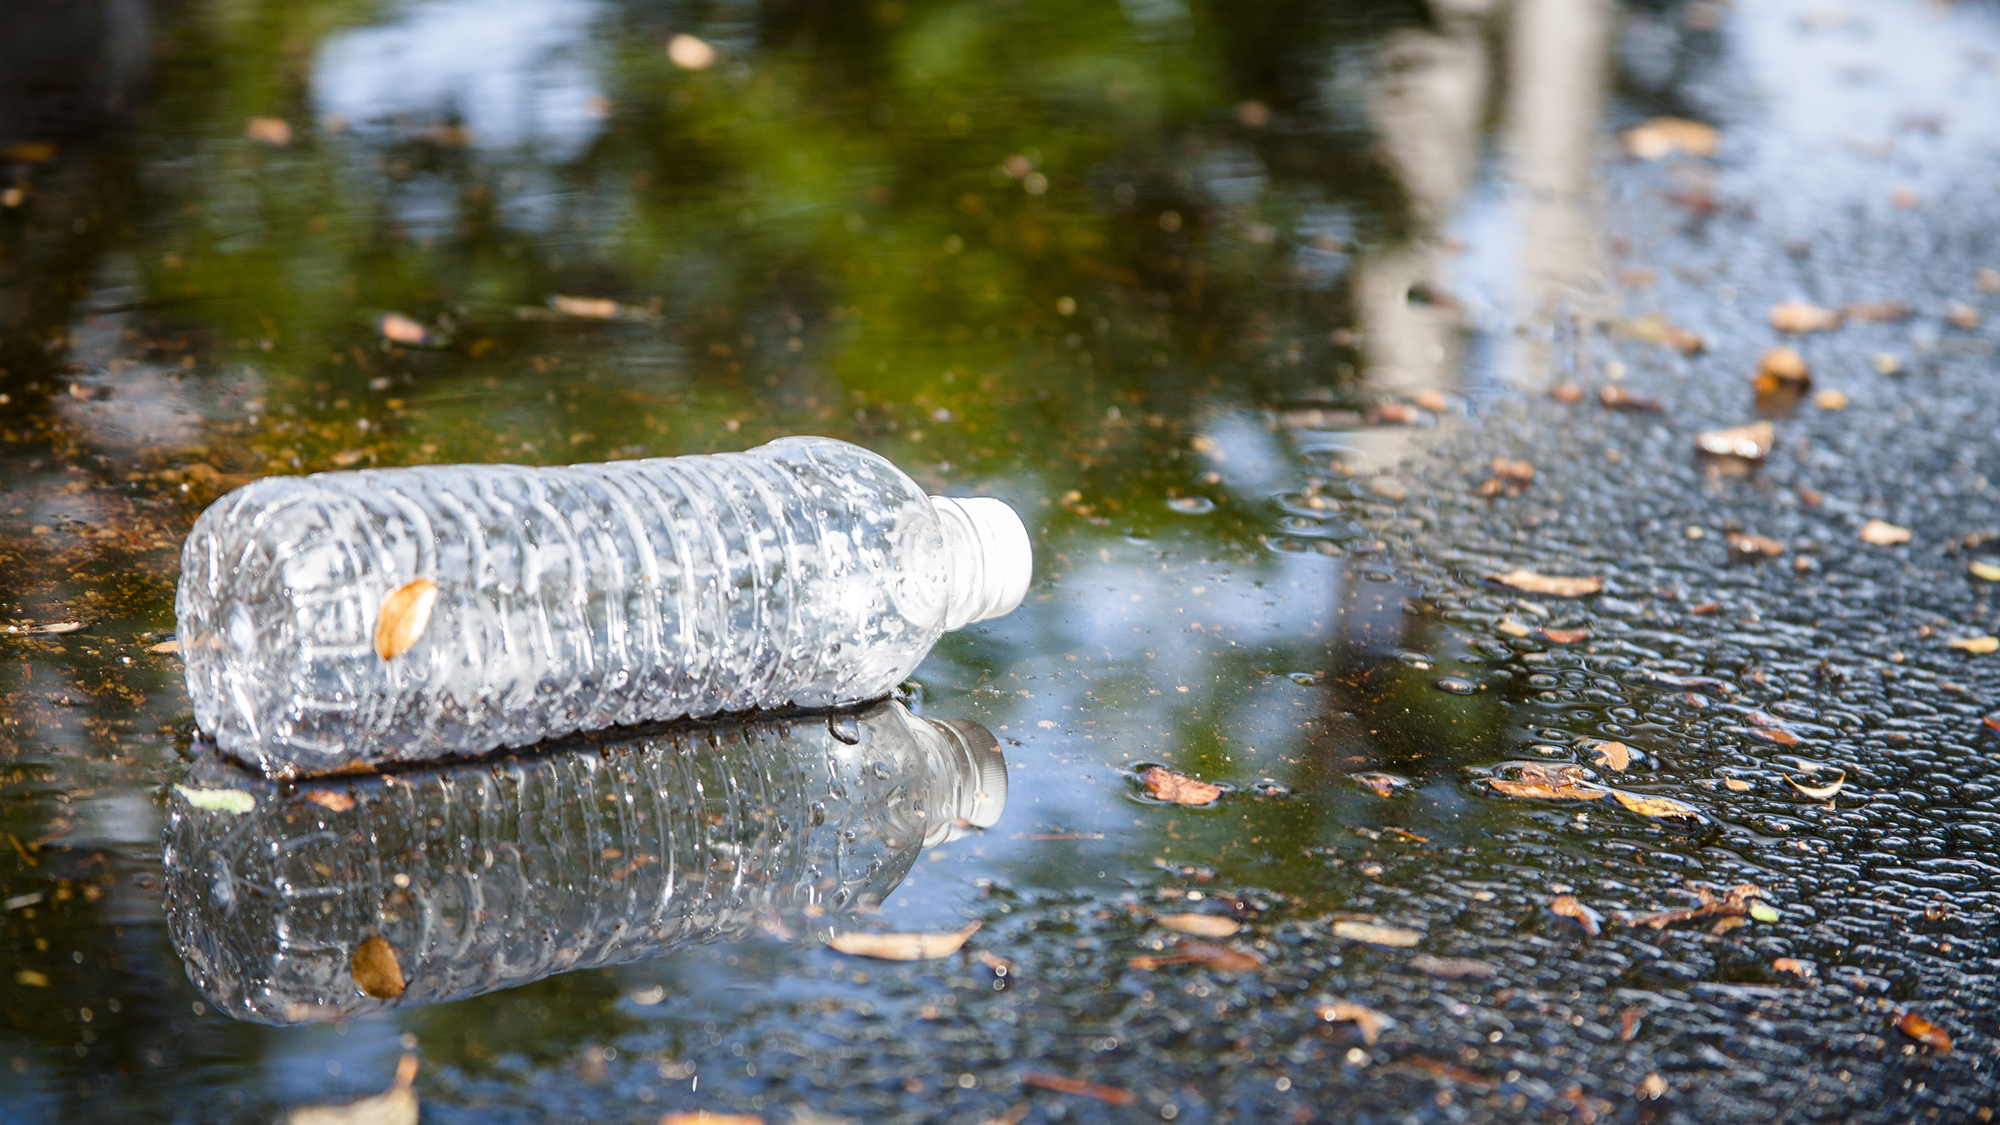 Plastic bottle in puddle